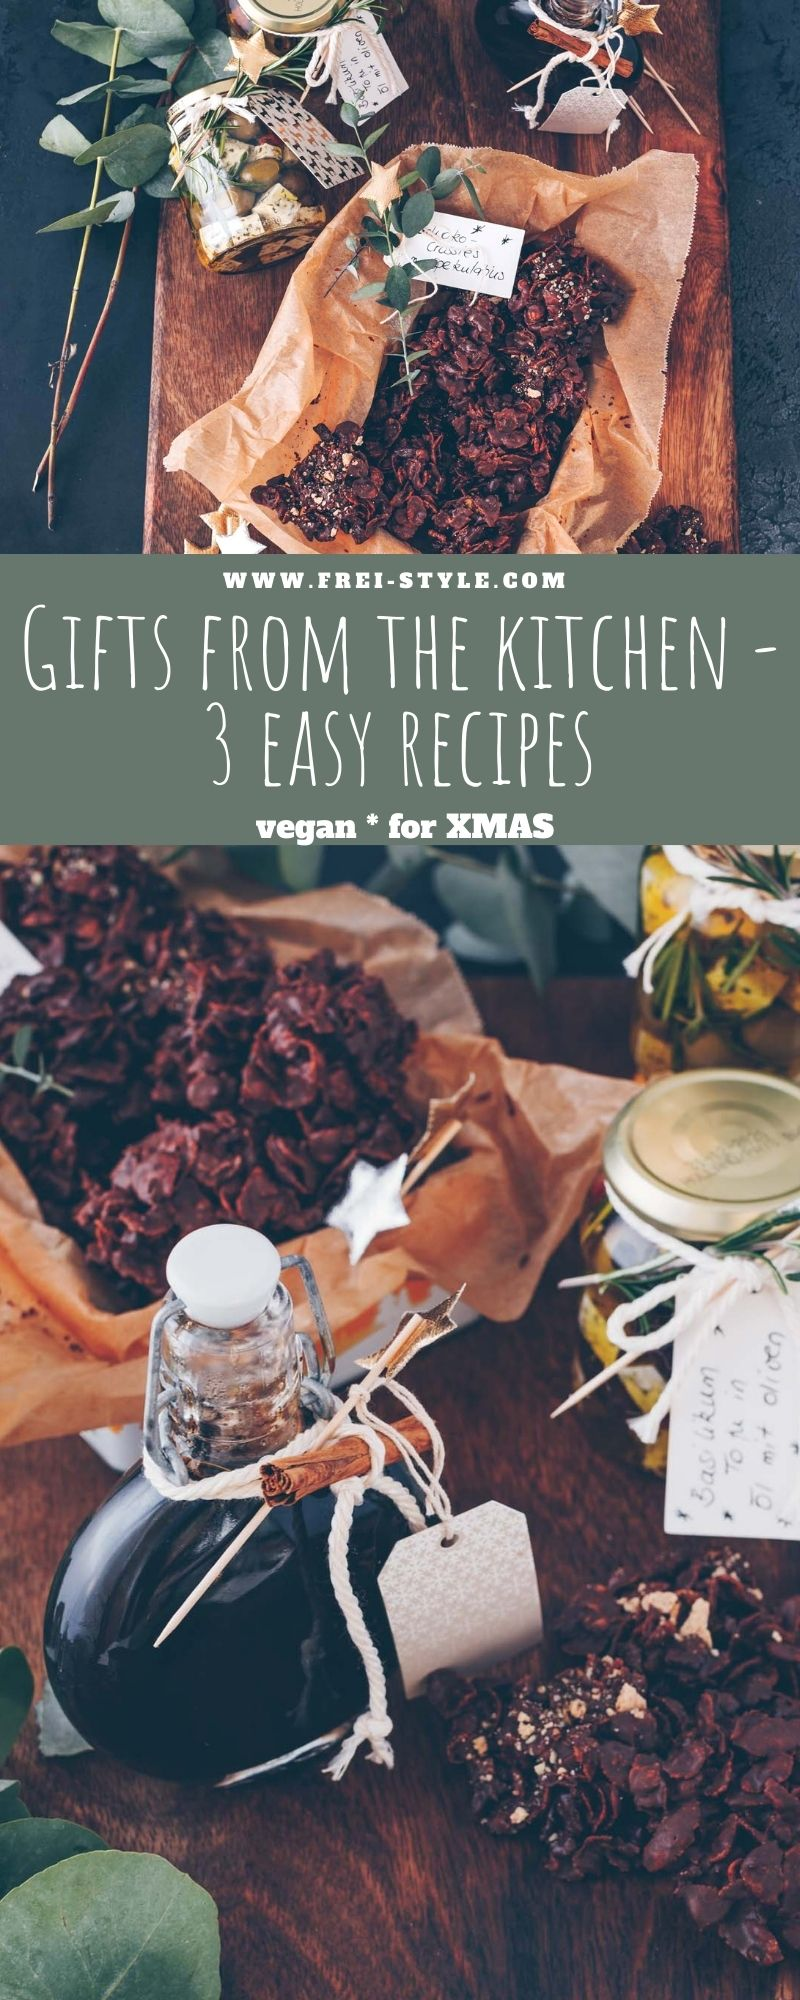 Gifts from the kitchen – 3 easy recipes